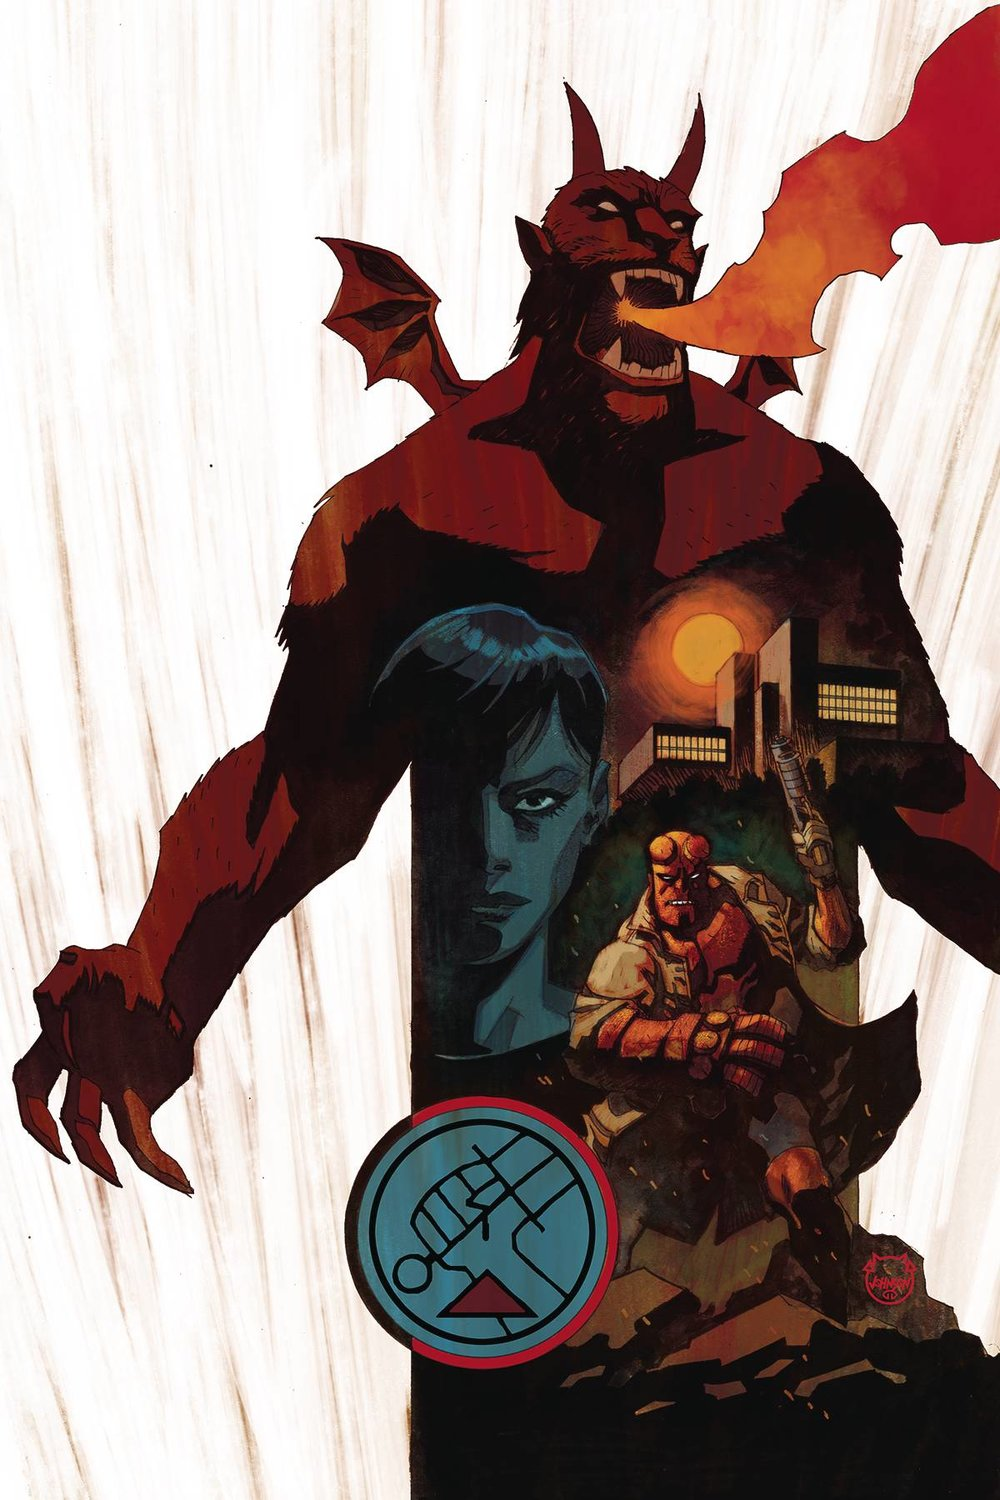 HELLBOY AND BPRD 1956 4 of 5.jpg